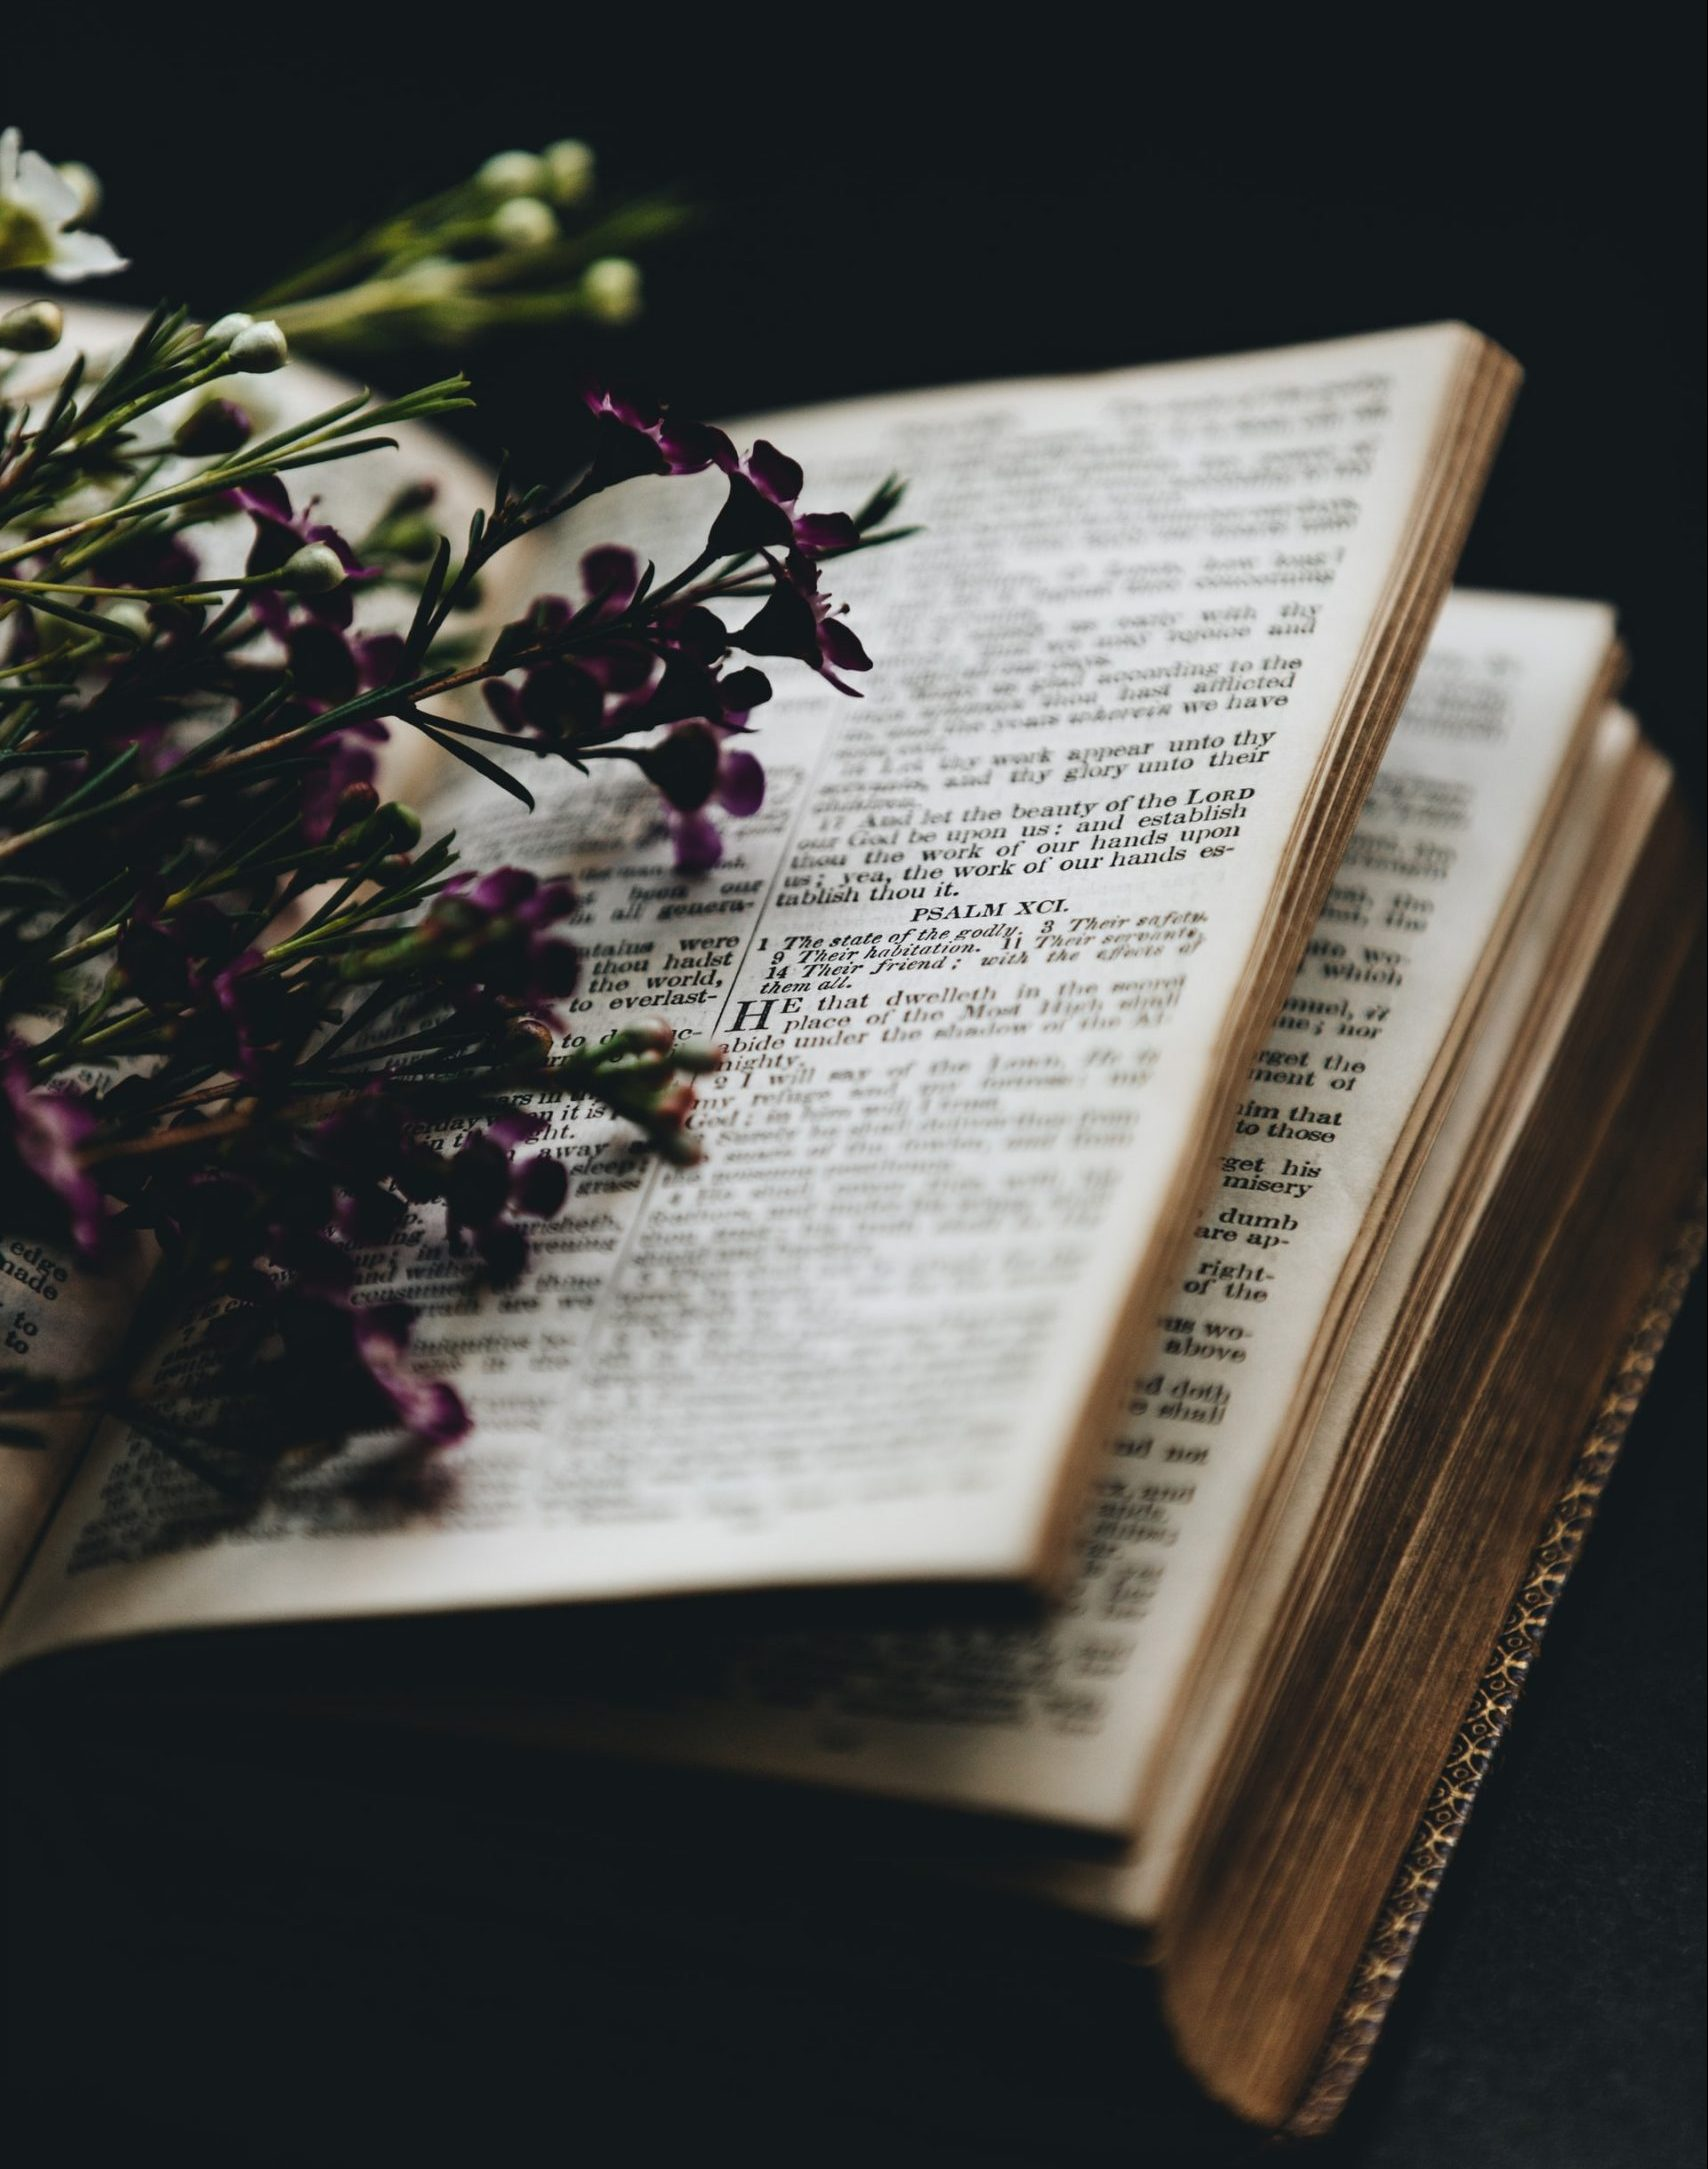 Readings and Gospel for this week